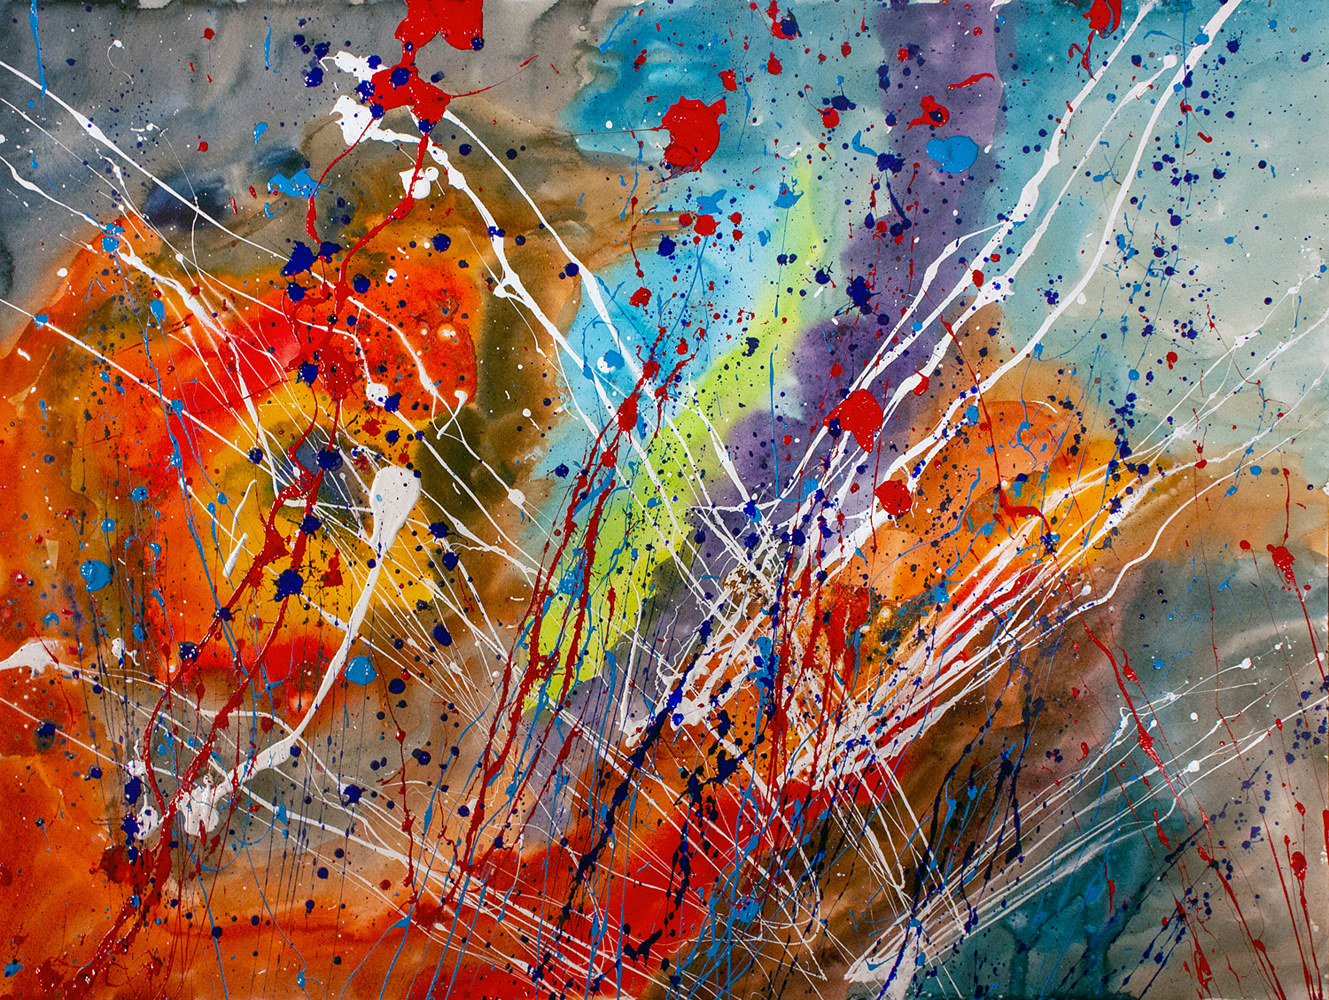 Acrylic painting Fireworks in the middle of a storm | Feu d'artifice au milieu de l'orage by Nathalie Gribinski